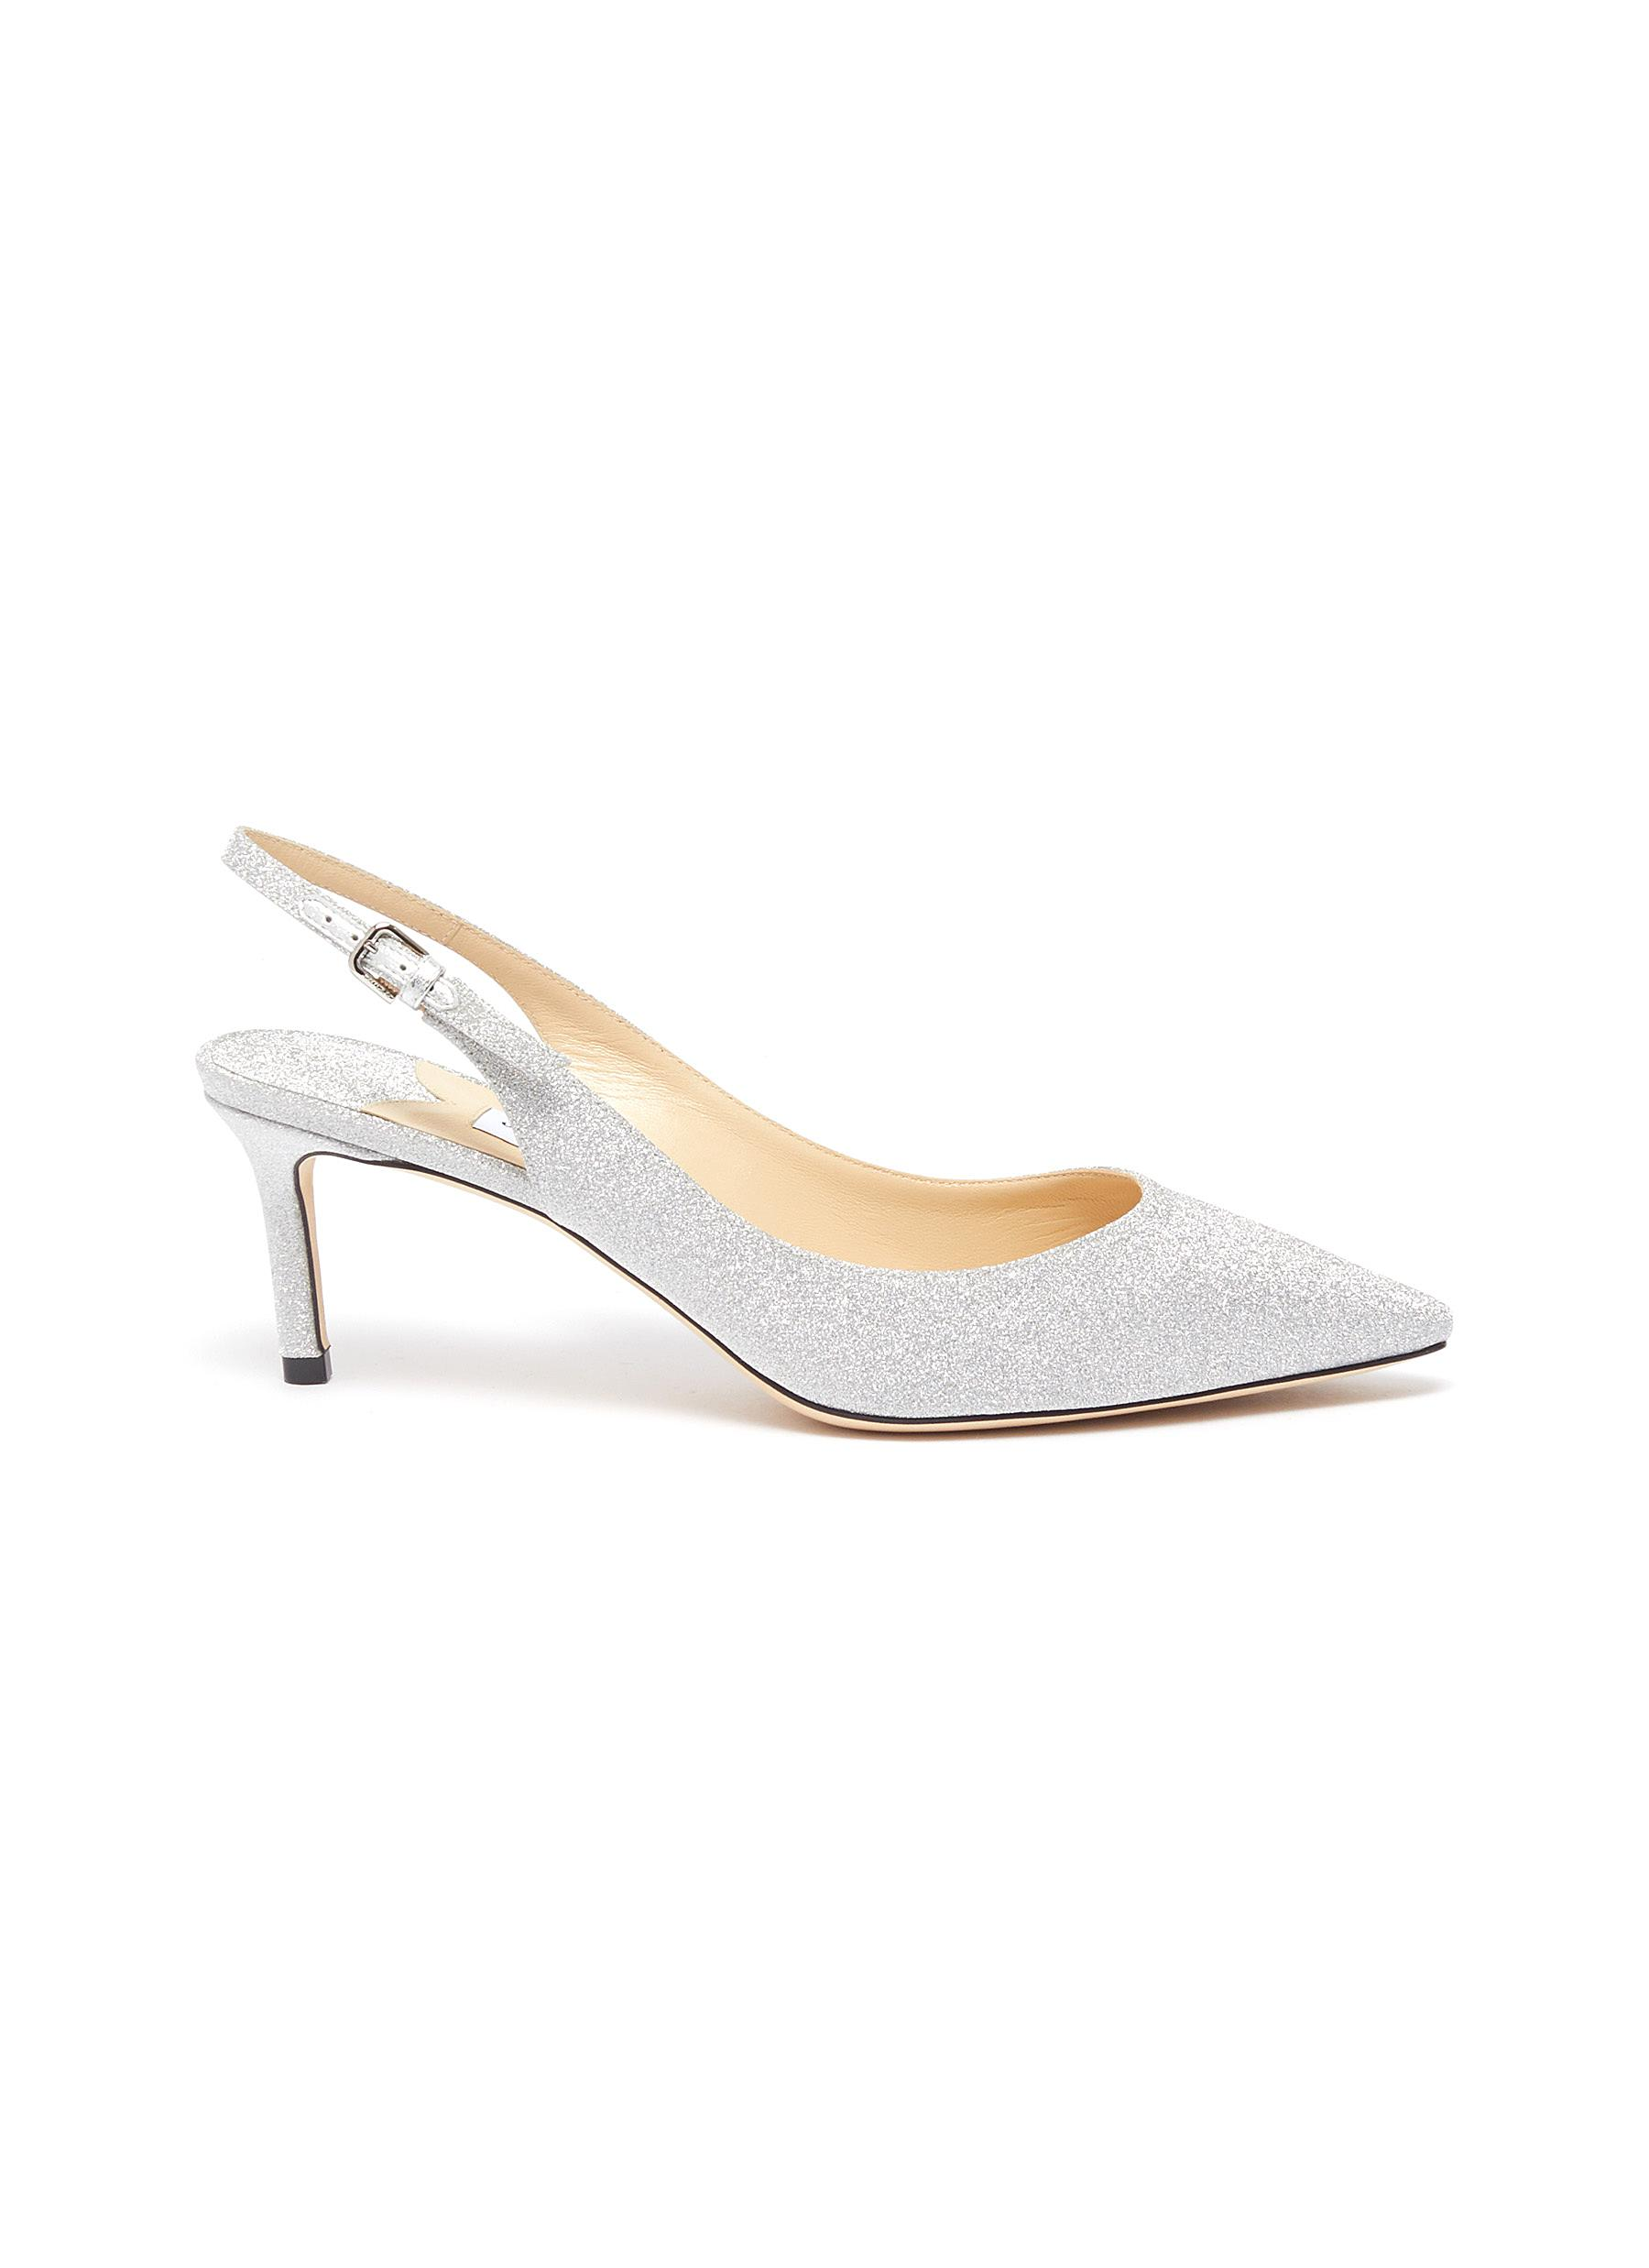 Erin 60 glitter slingback pumps by Jimmy Choo